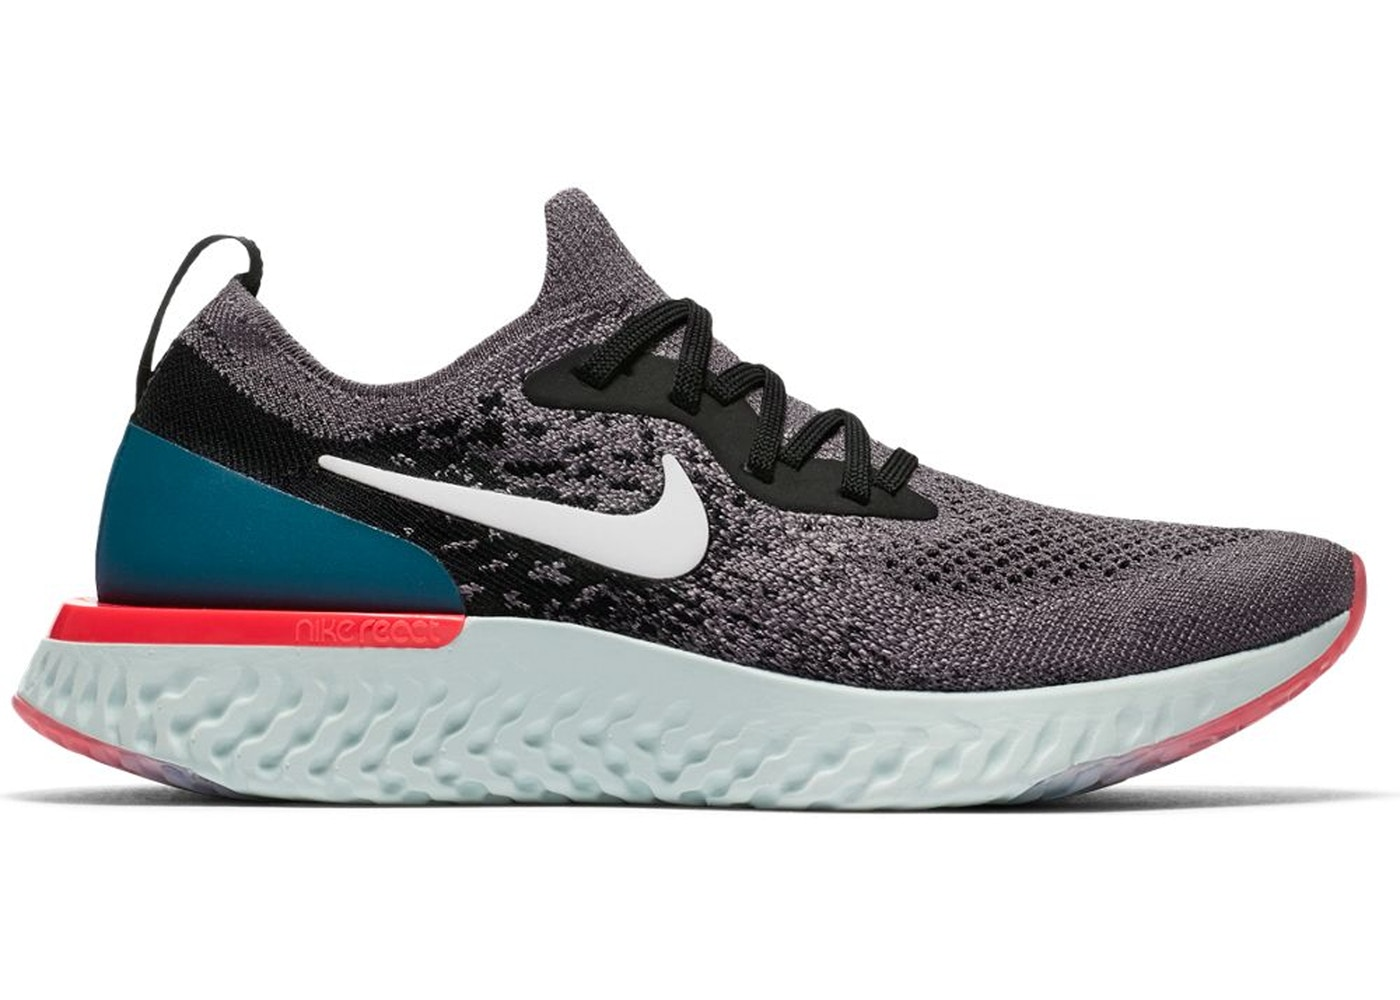 ca0ccf8b69bb Nike Epic React Flyknit Gunsmoke Black Geode Teal (GS) - 943311-010